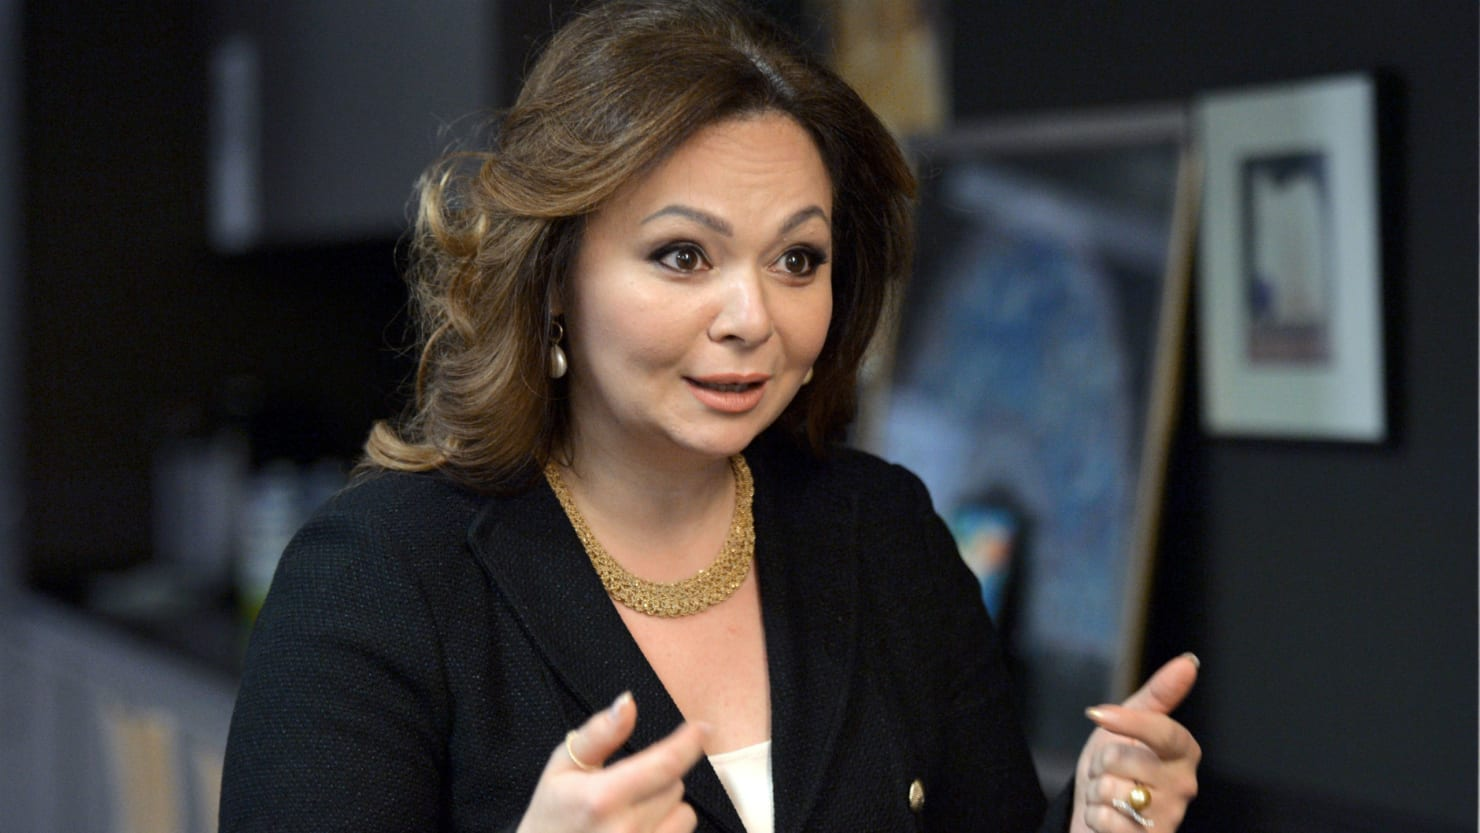 Russian Official Linked to Natalia Veselnitskaya, the Trump Tower Lawyer, Is Dead